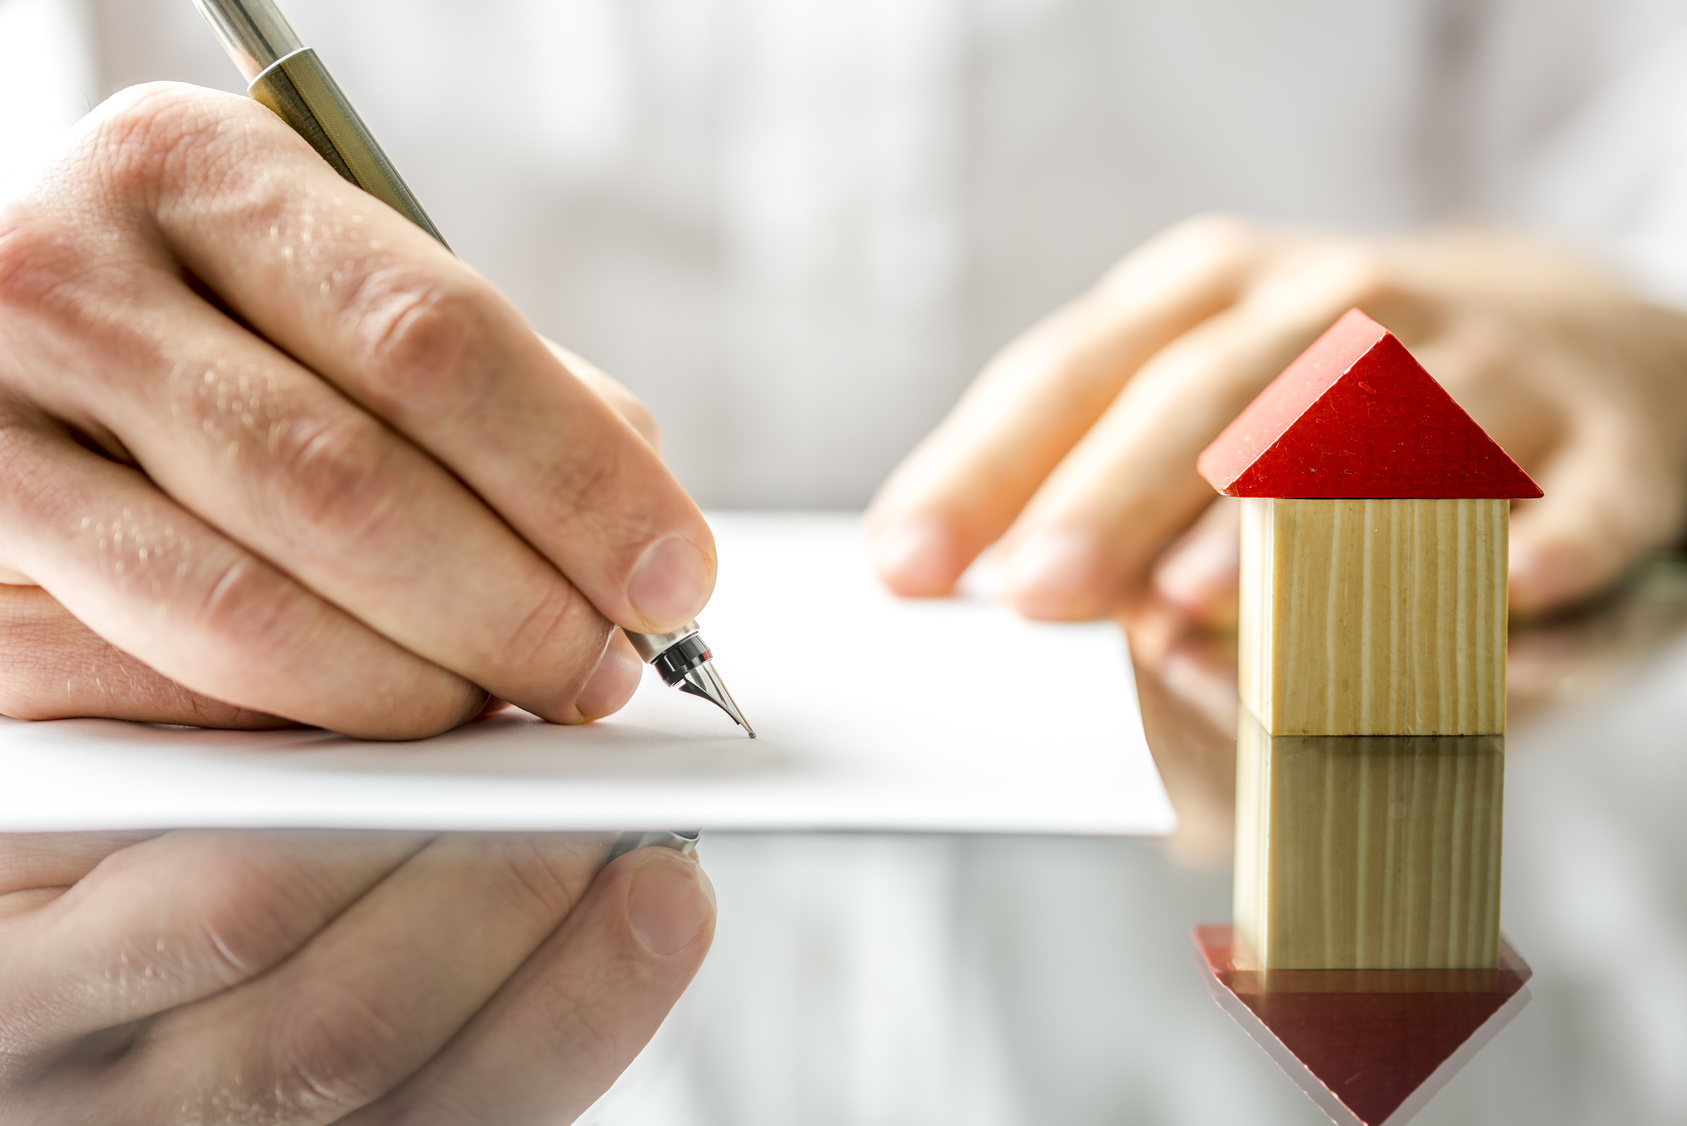 Conceptual image of a man signing a mortgage or insurance contract or the deed of sale when buying a new house or selling his existing one with a small wooden model of a house alongside